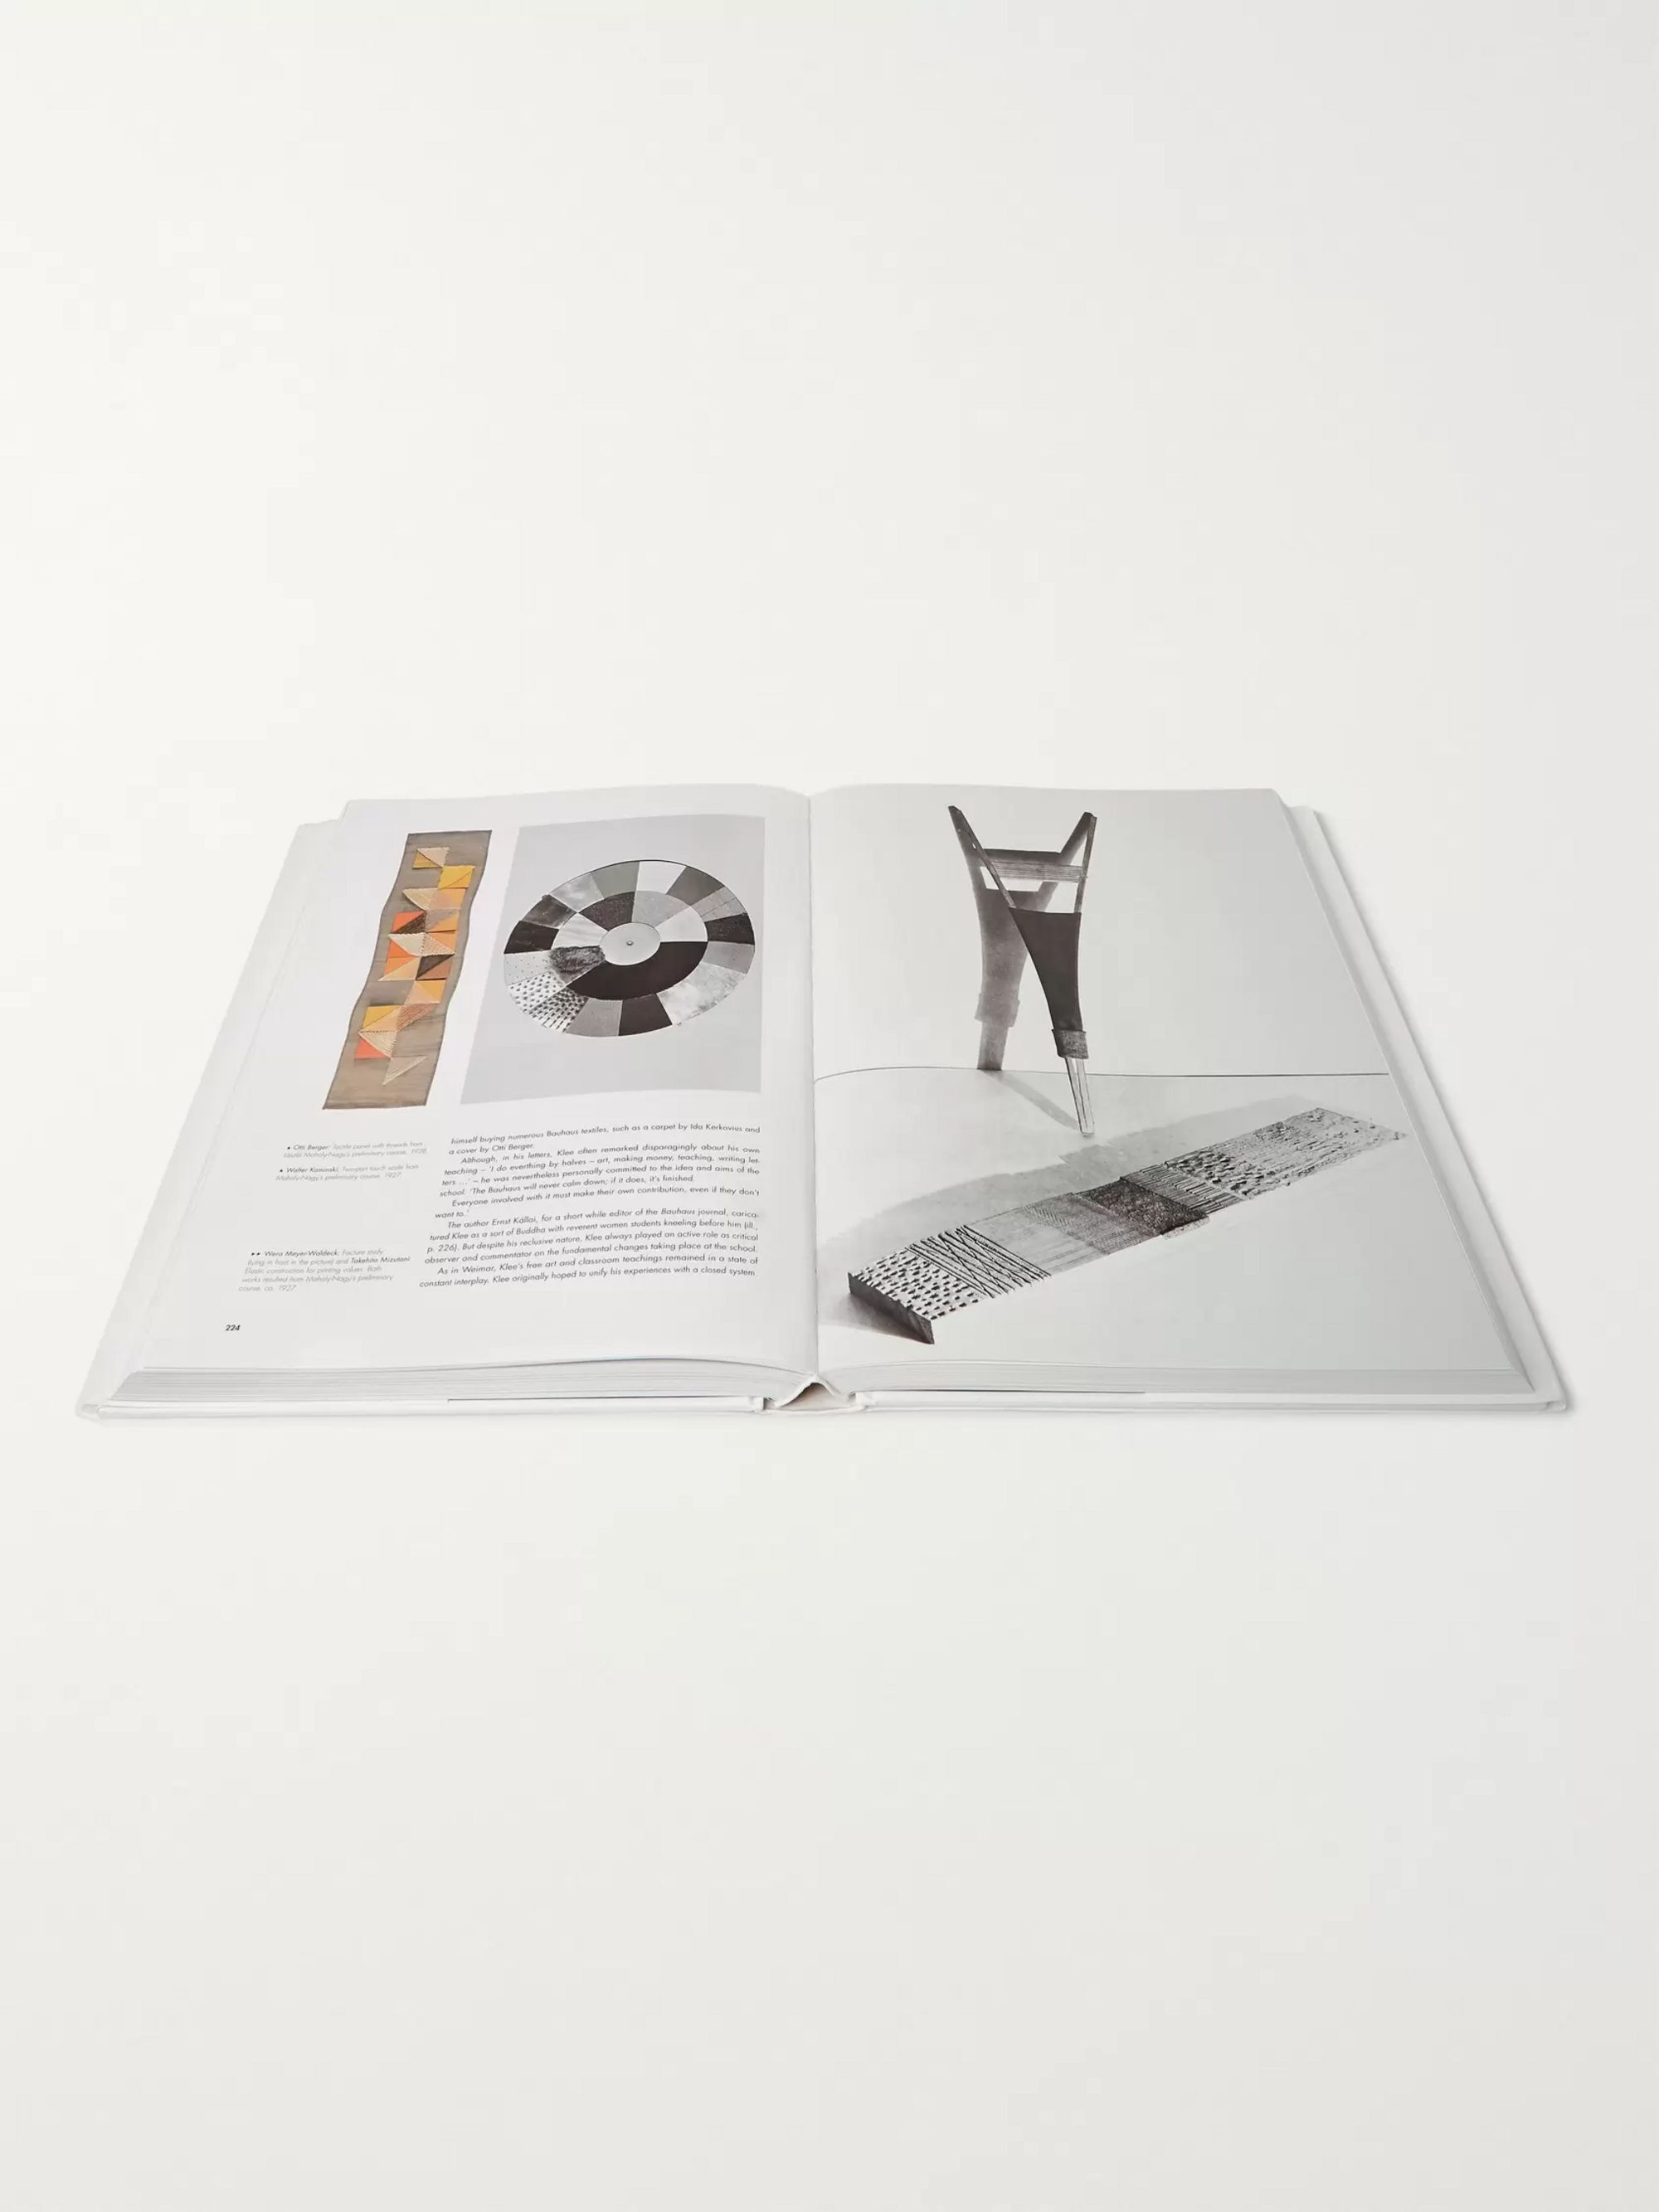 Taschen Bauhaus: Updated Edition Hardcover Book